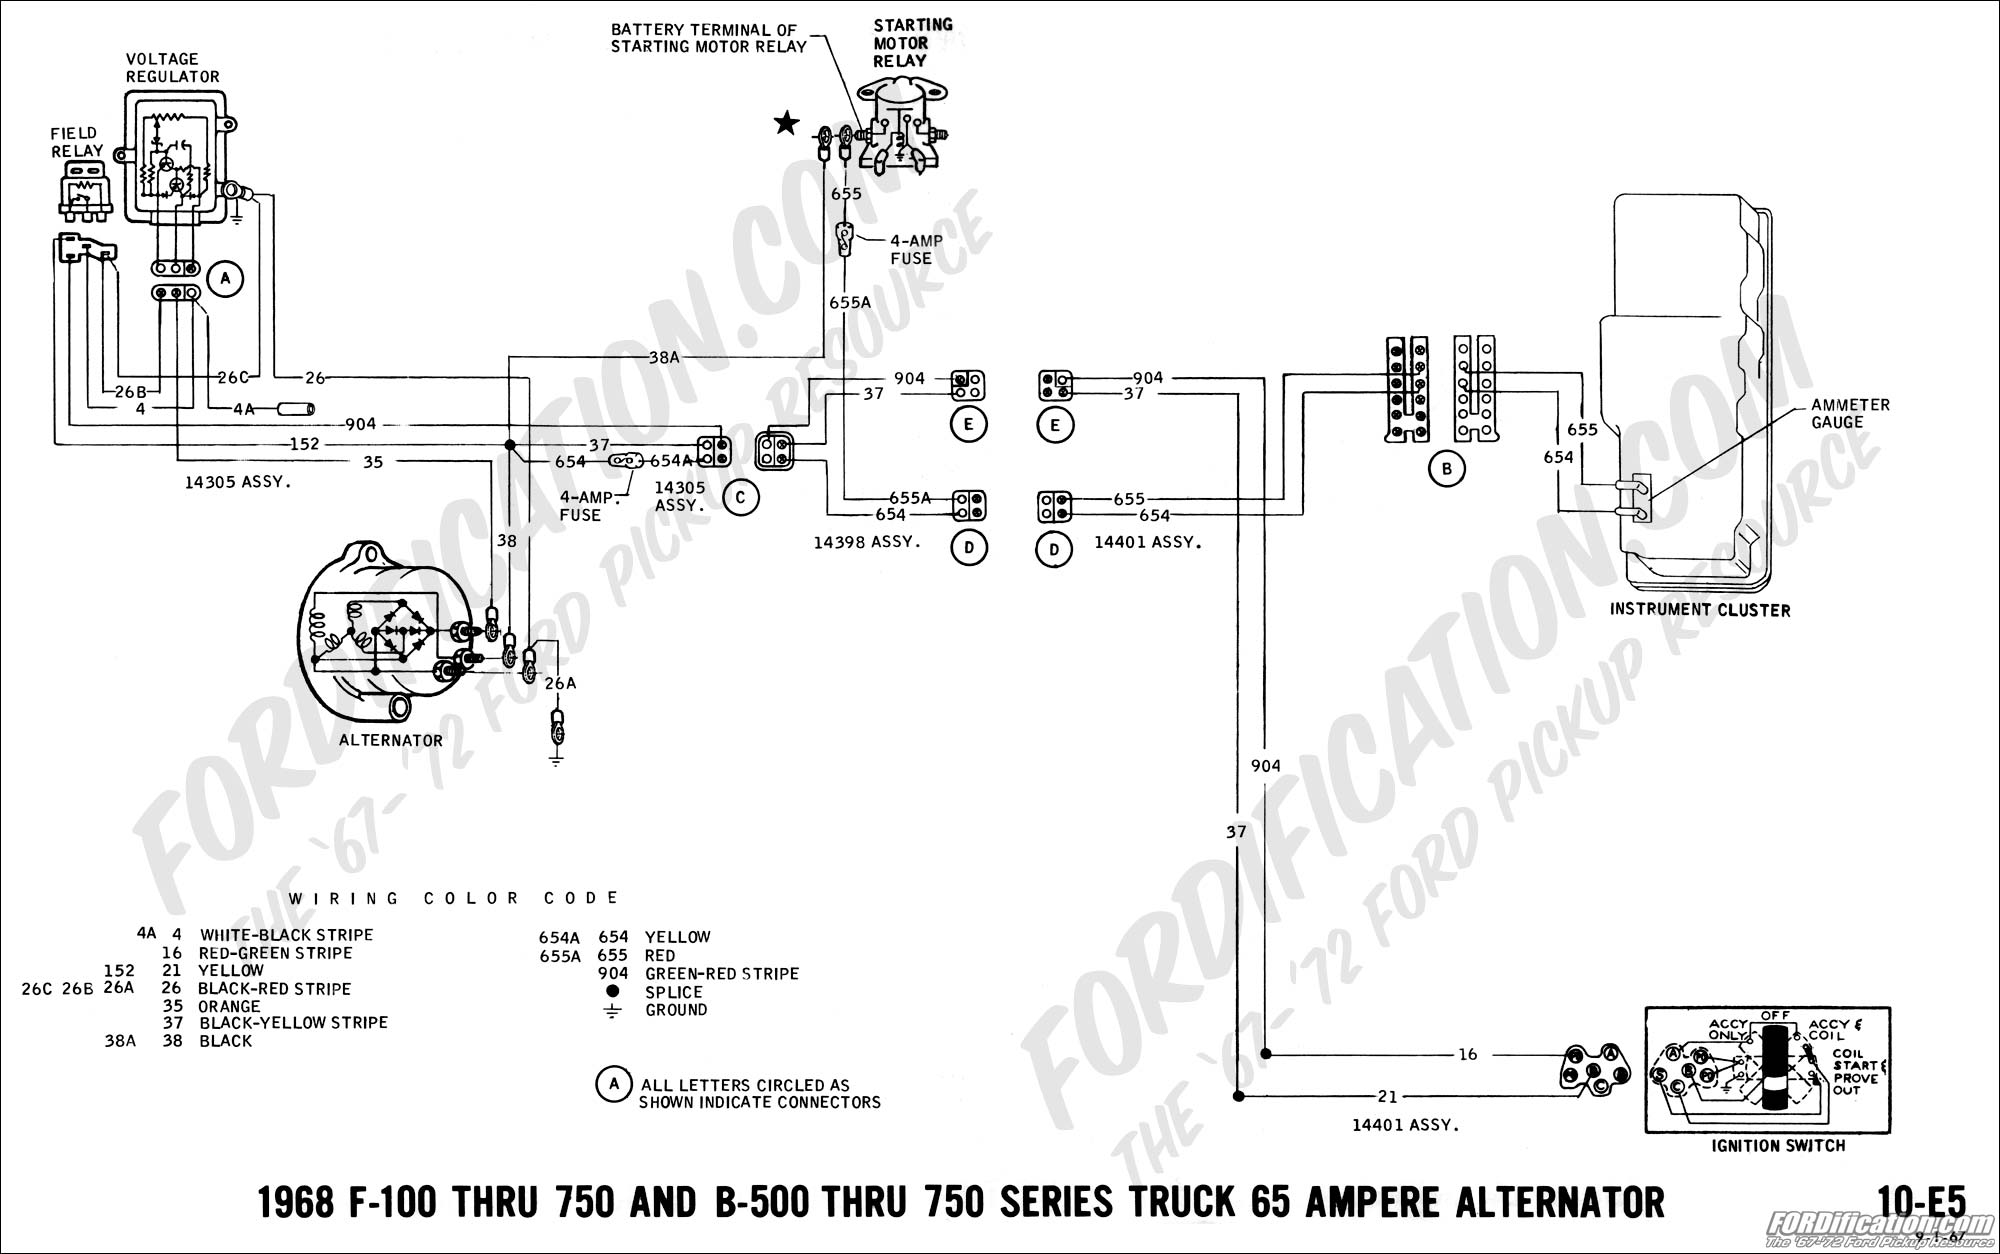 68 07 1968 ford f100 wiring diagram 1965 ford f100 alternator wiring Ford Mirror Wiring Harness at honlapkeszites.co